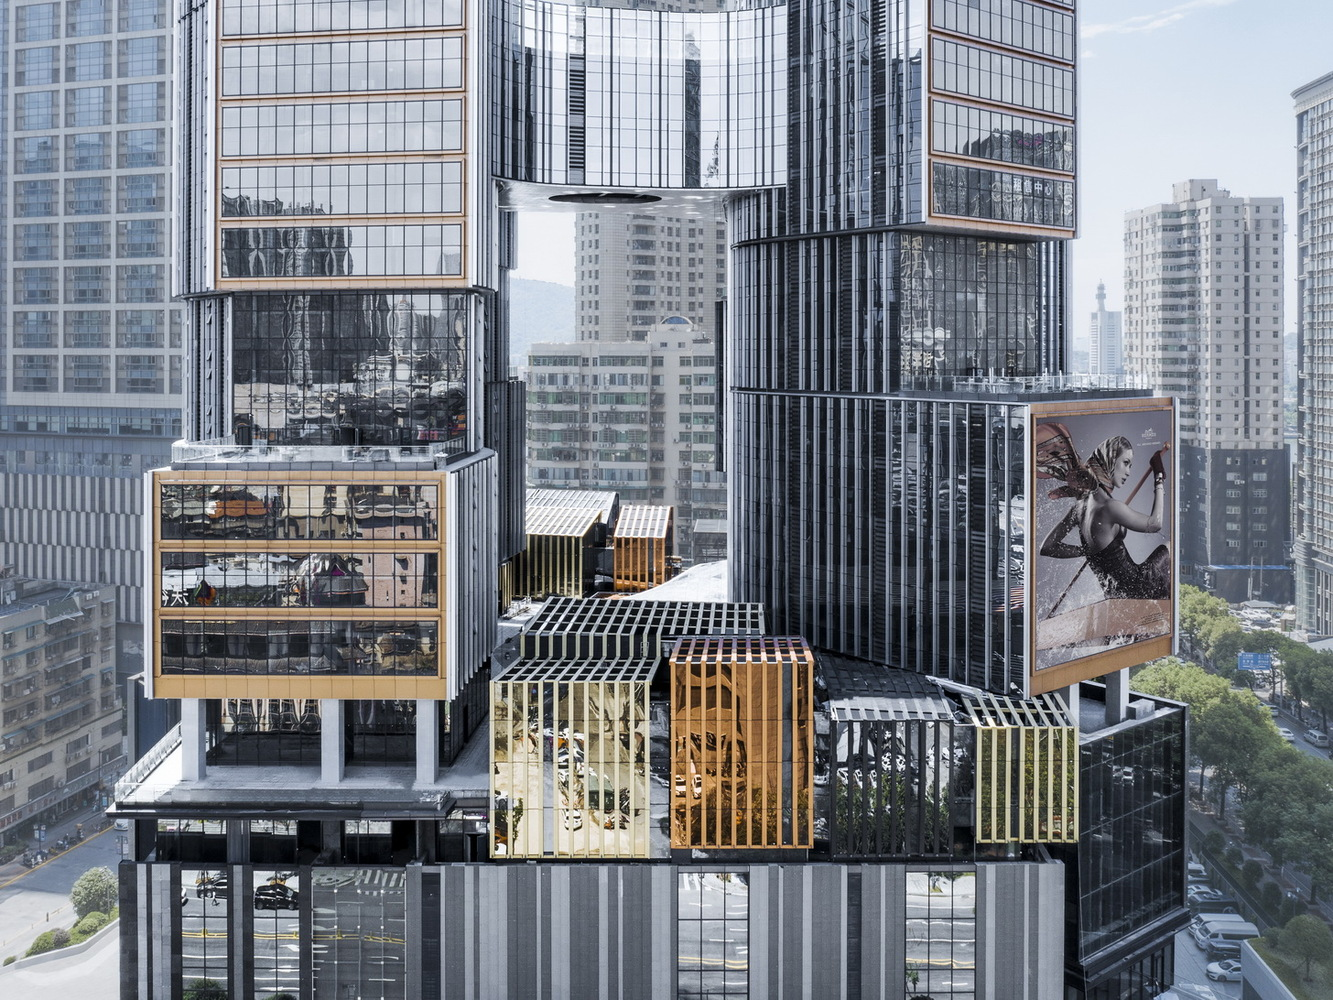 Transition space on top of podium. Image Courtesy of Aedas